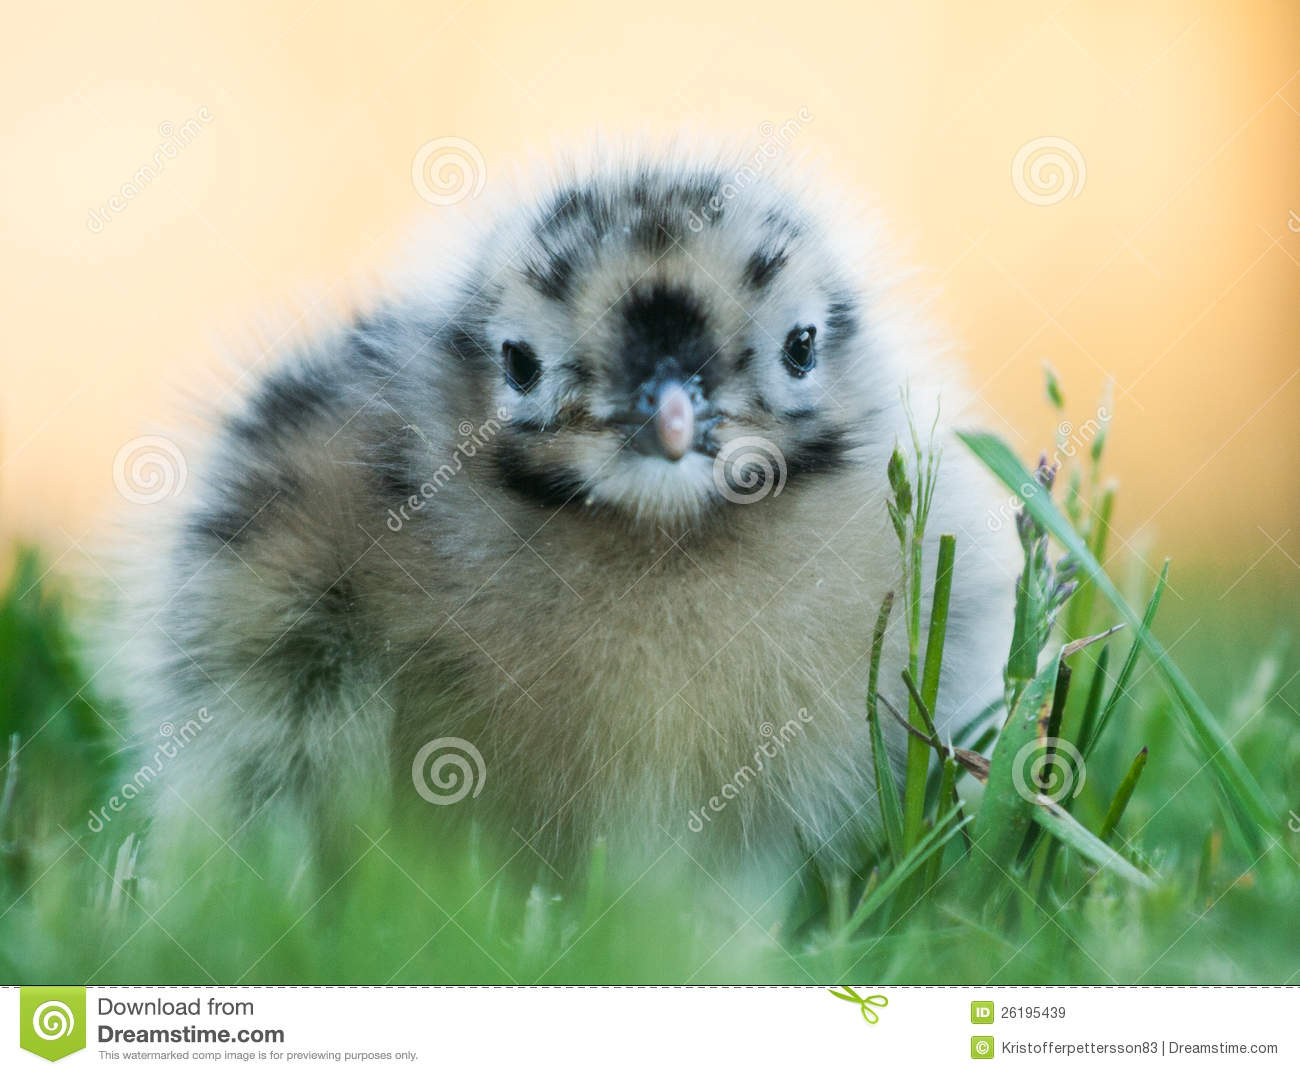 Baby seagull looking cute stock image  Image of feathers